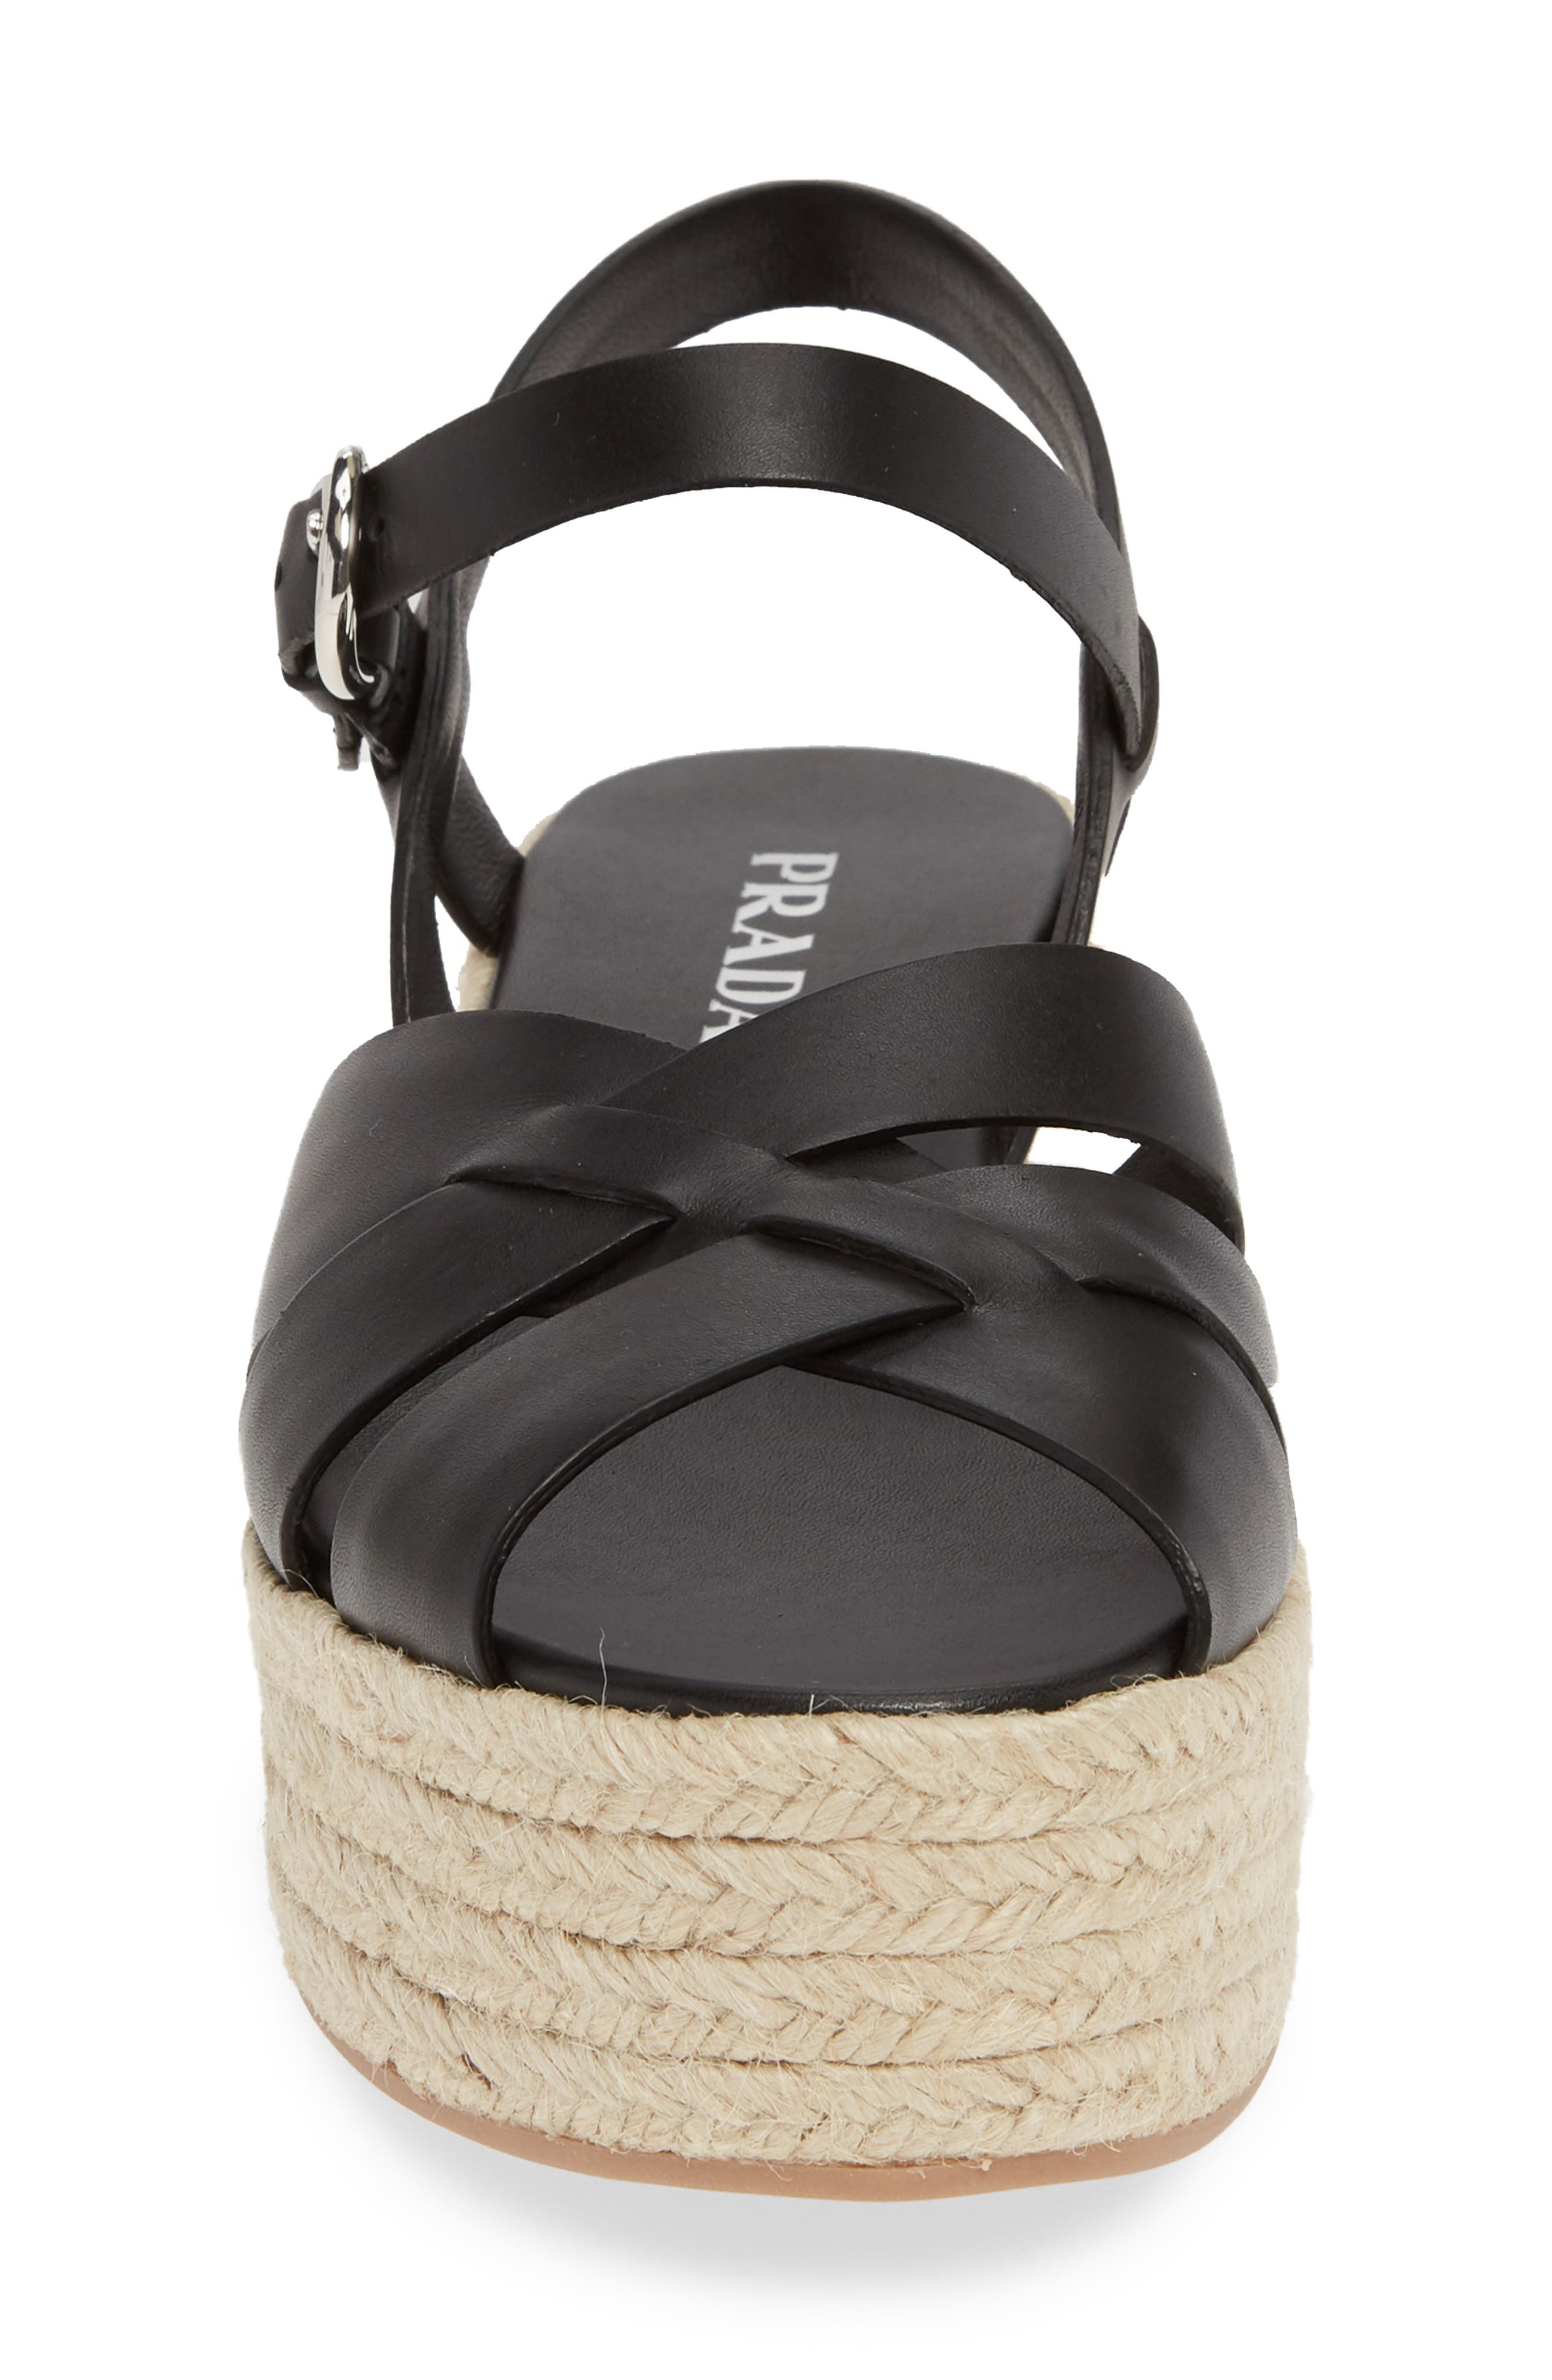 PRADA, Platform Espadrille Sandal, Alternate thumbnail 4, color, BLACK